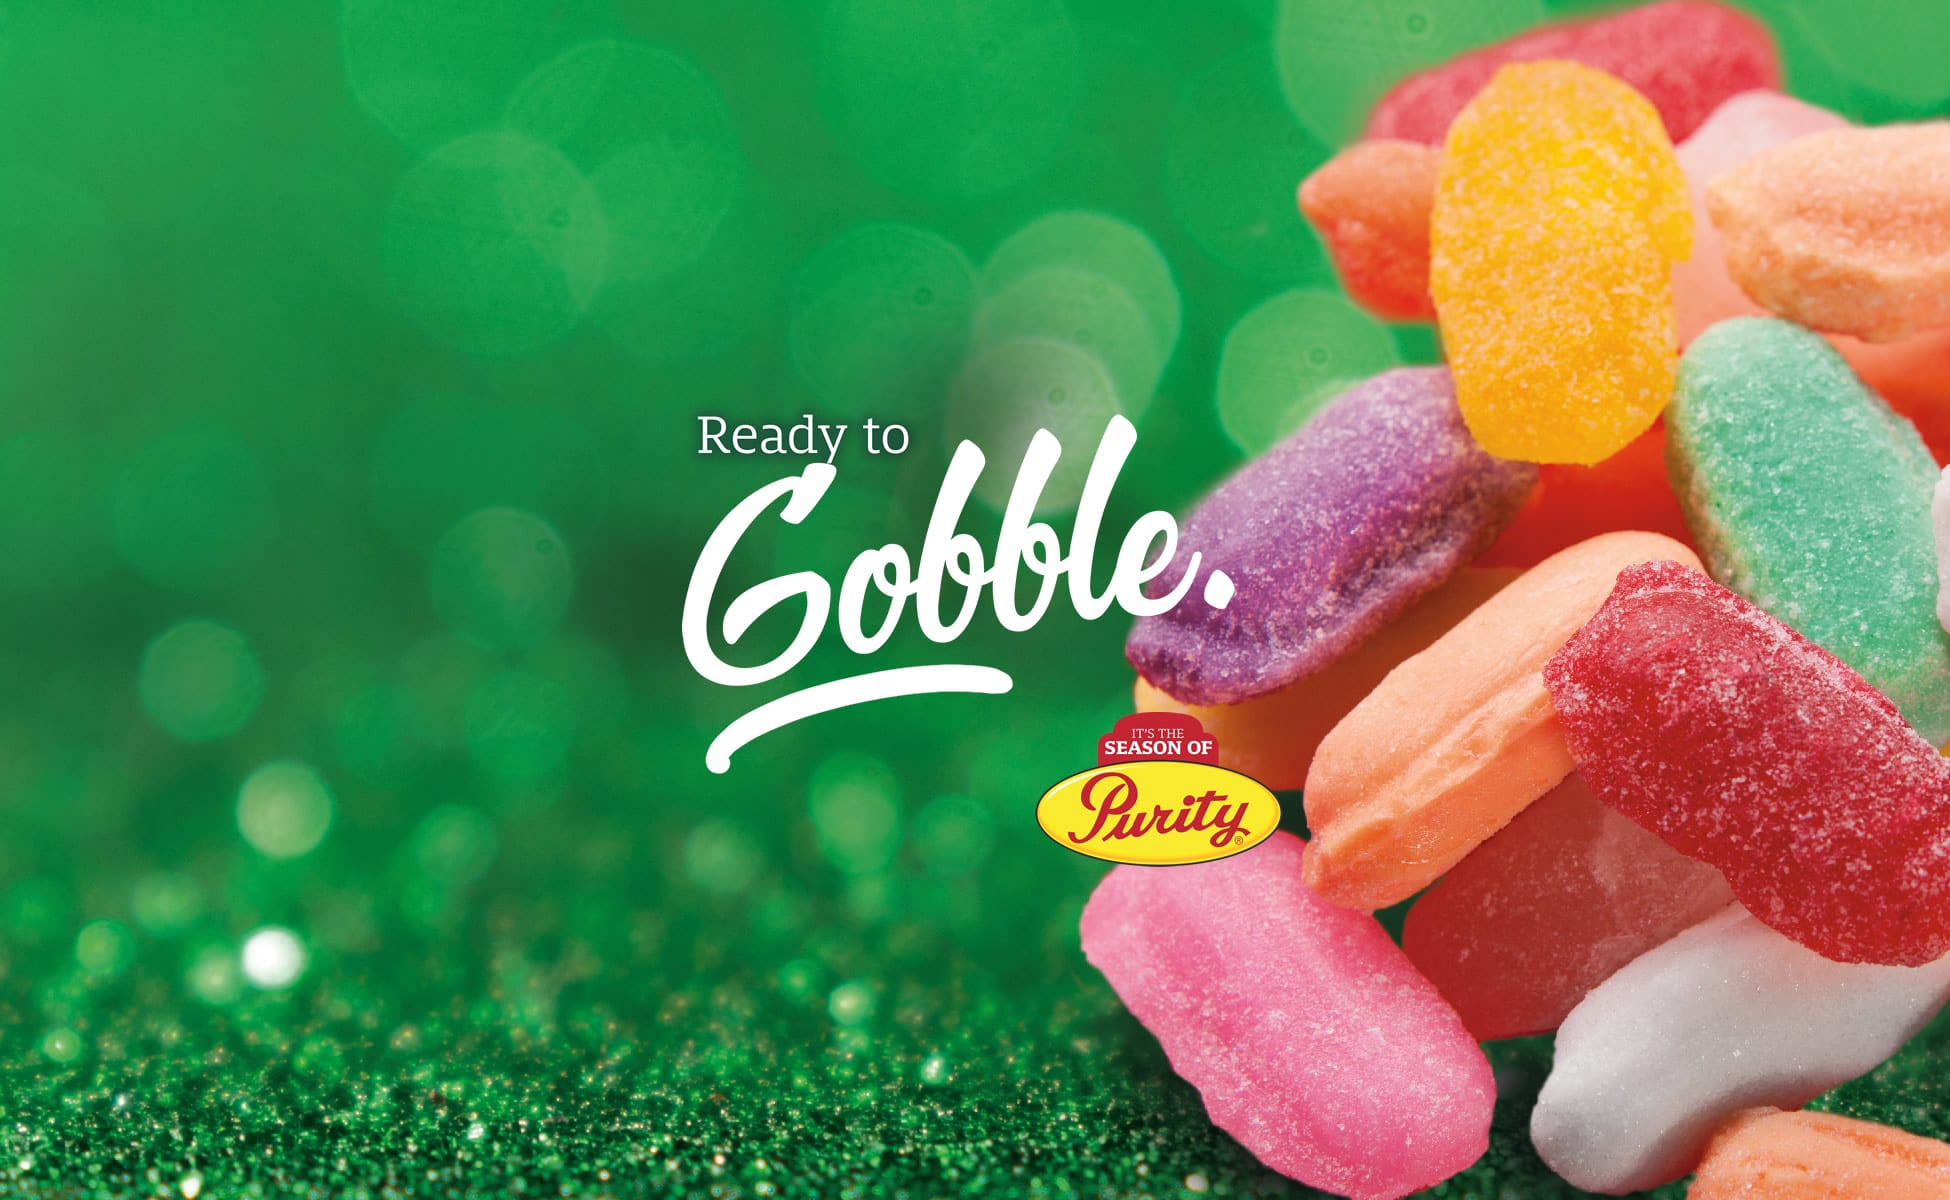 It's the Season of Purity, Ready to Gobble